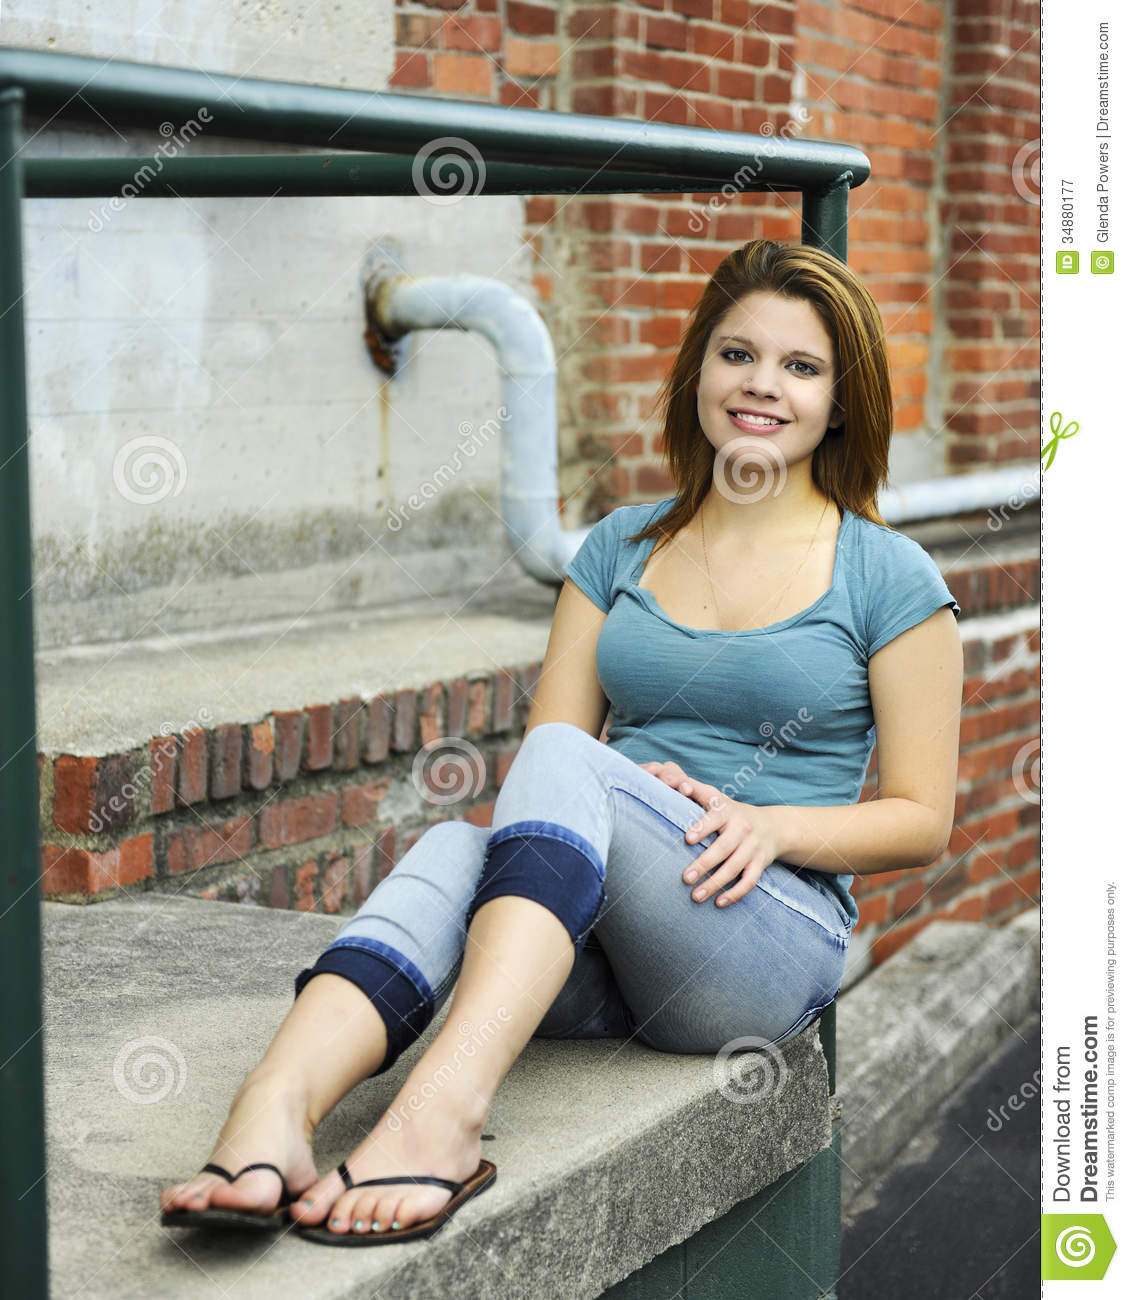 Black Sandals Happy Teen On The Stoop Royalty Free Stock Photography